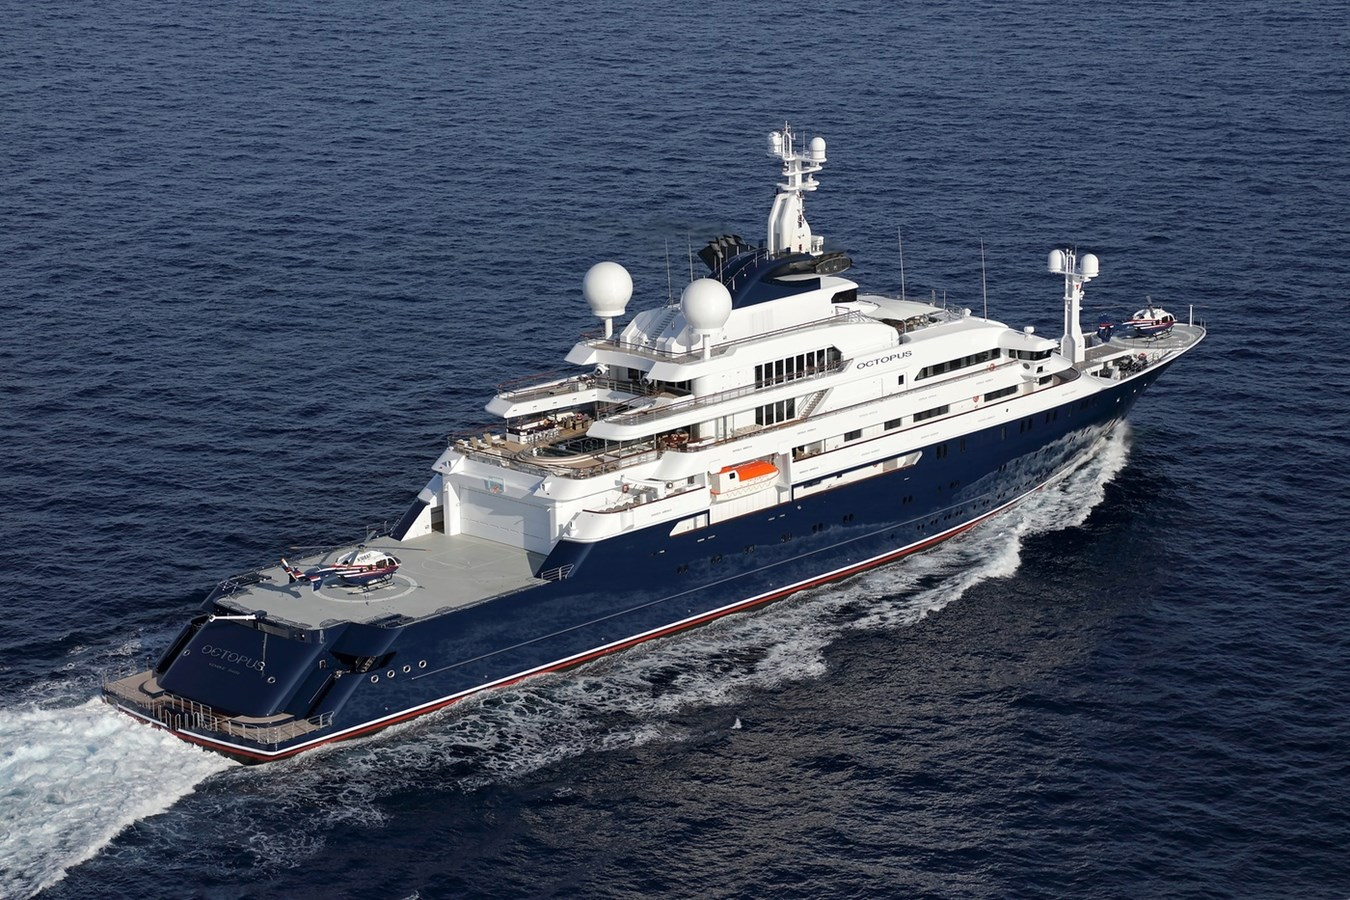 OCTOPUS_00006307_vb1574494 2003 LURSSEN Twin Screw Displacement Yacht Motor Yacht 2817174